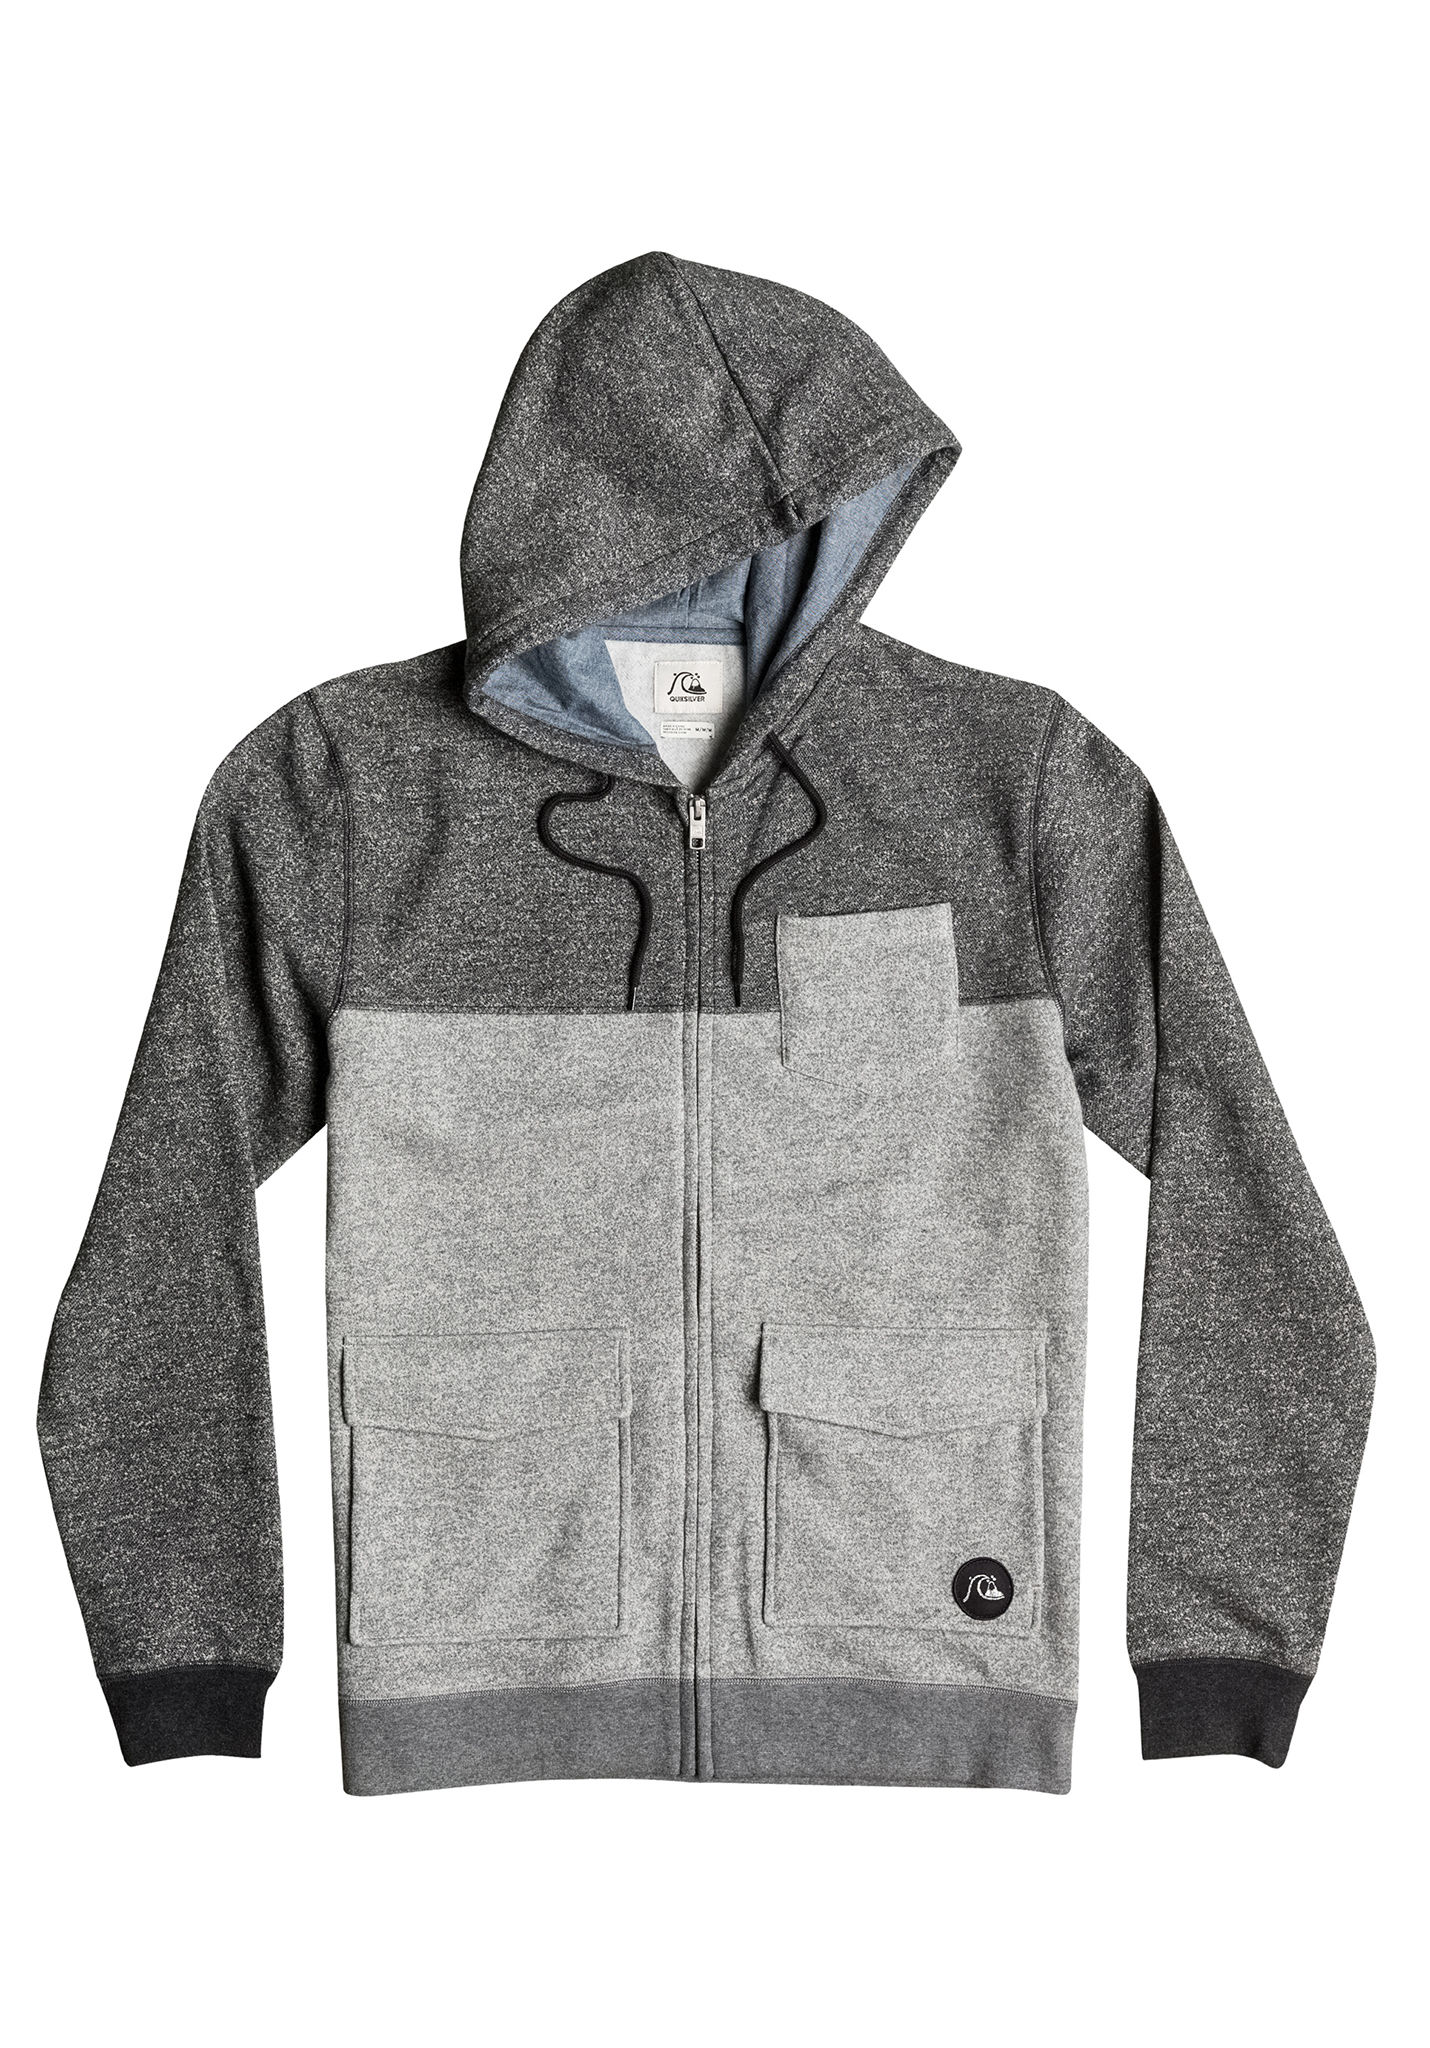 Quiksilver Dark Voices - Hooded Jacket for Men - Grey - Planet Sports 689b887b6ef